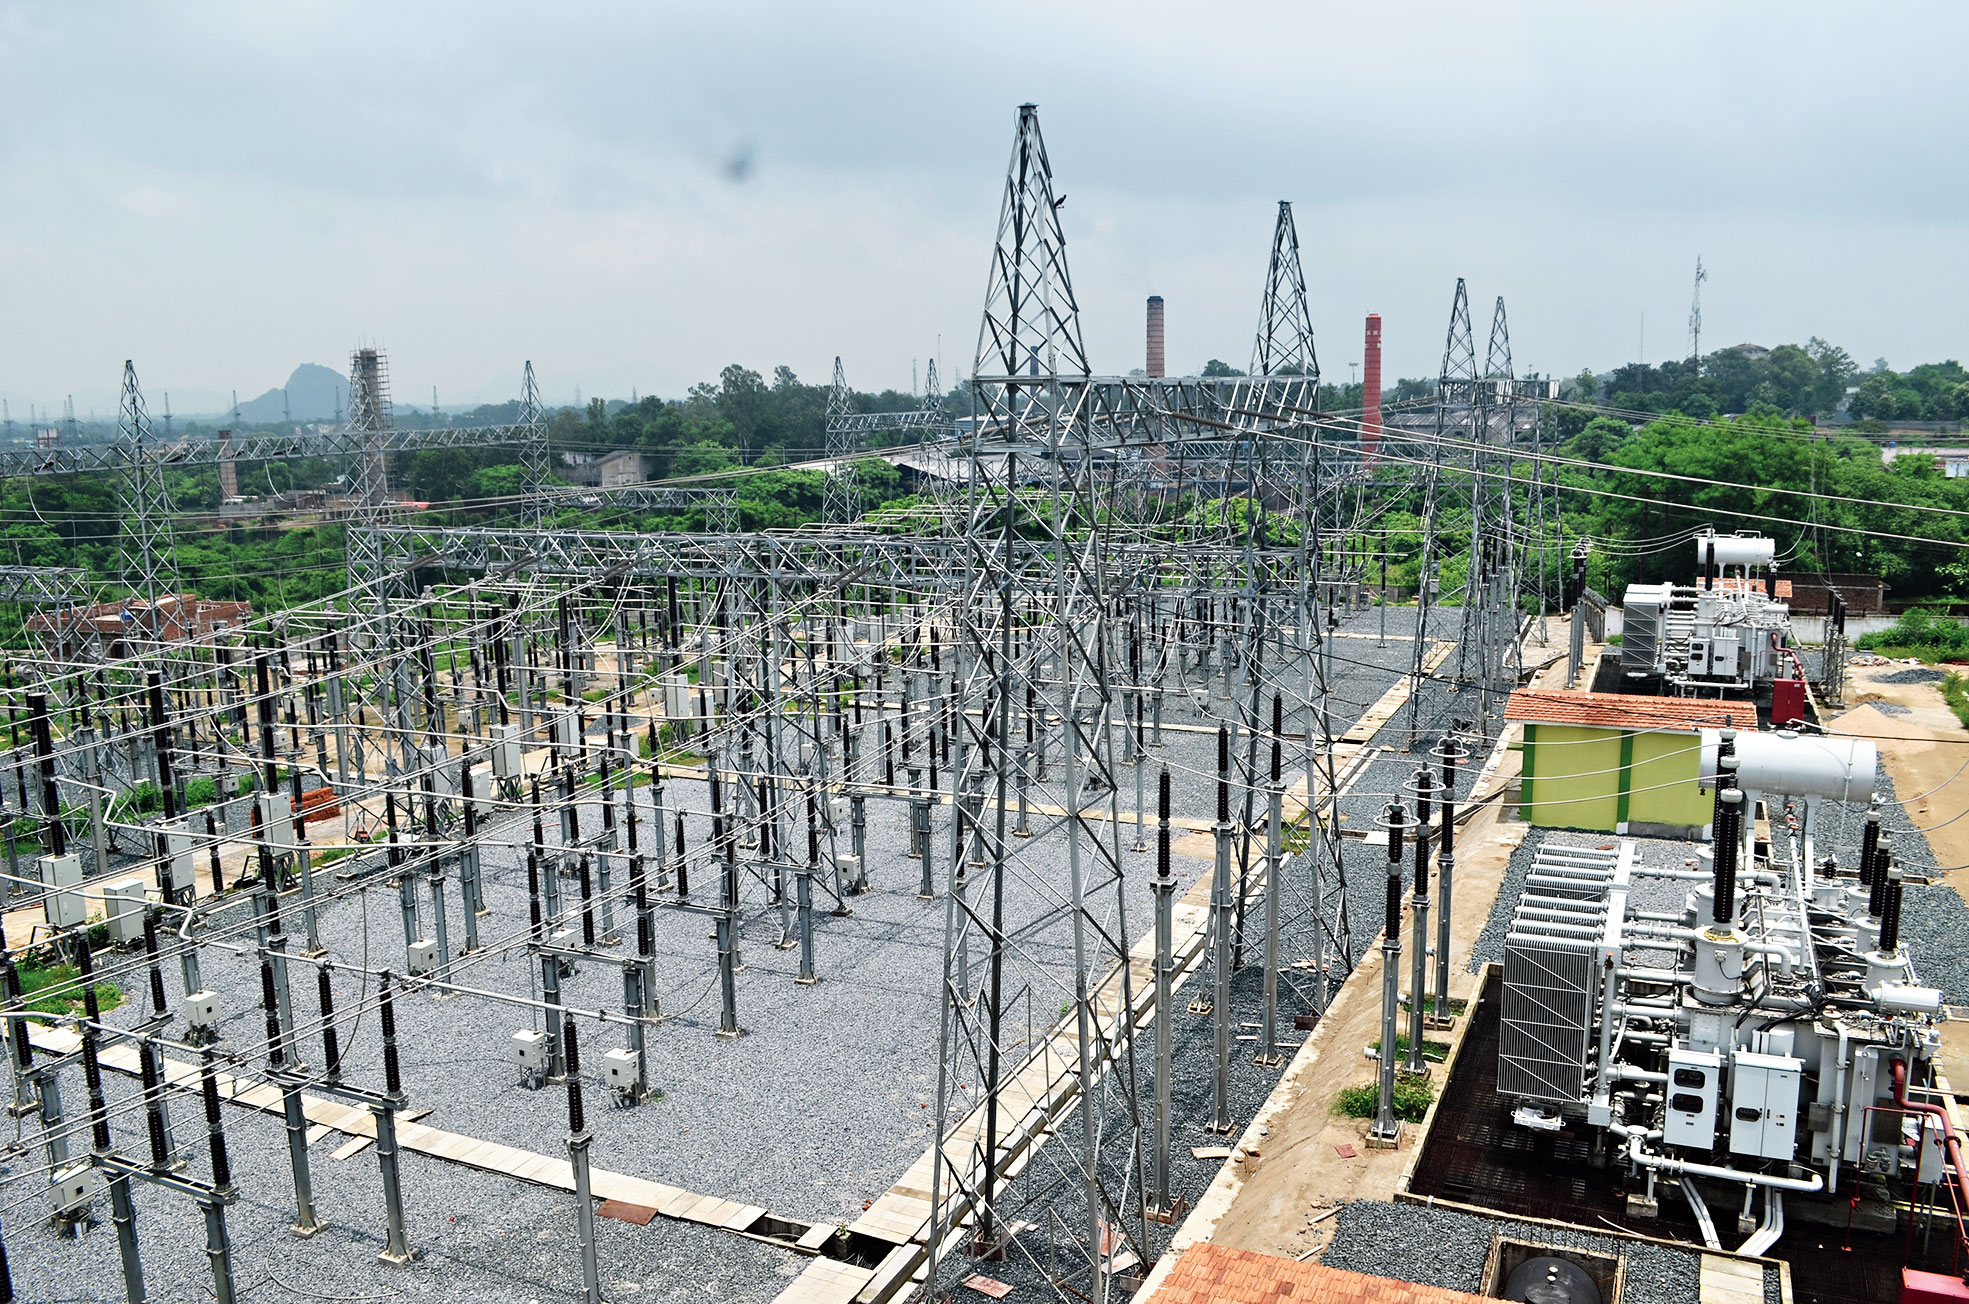 The substation of Jharkhand Urja Sancharan Nigam Ltd at Kandra in Dhanbad.